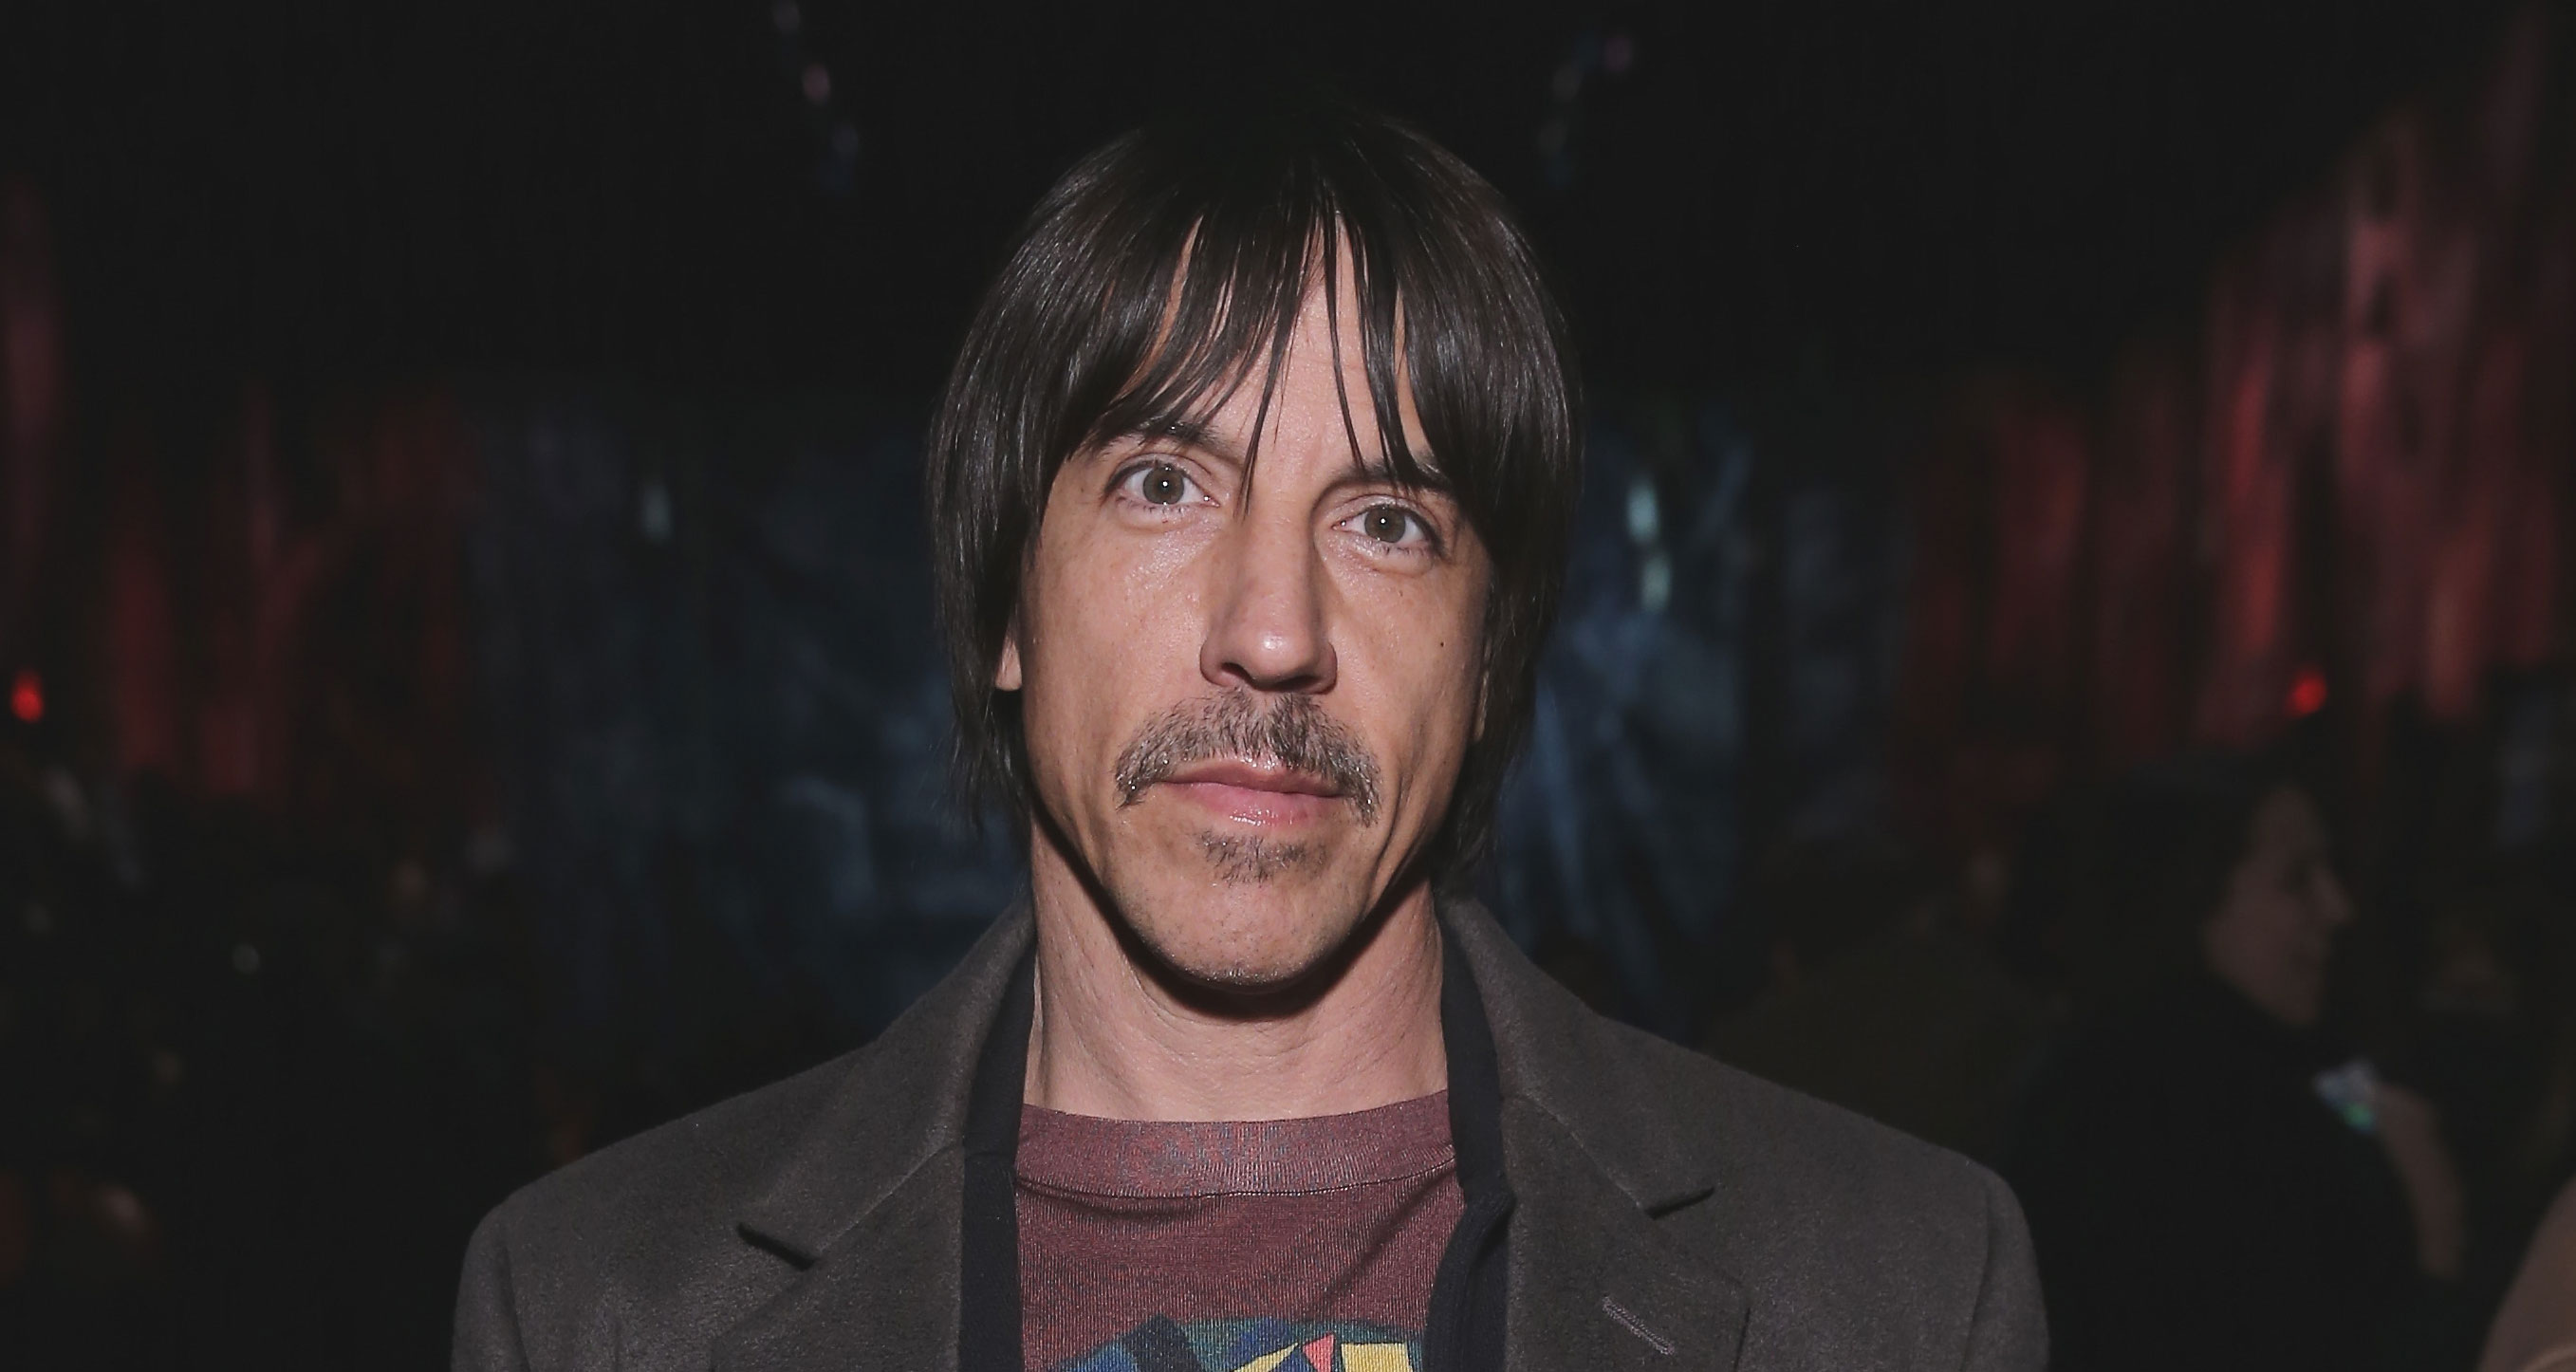 Red Hot Chili Peppers Singer Anthony Kiedis Hospitalized ...